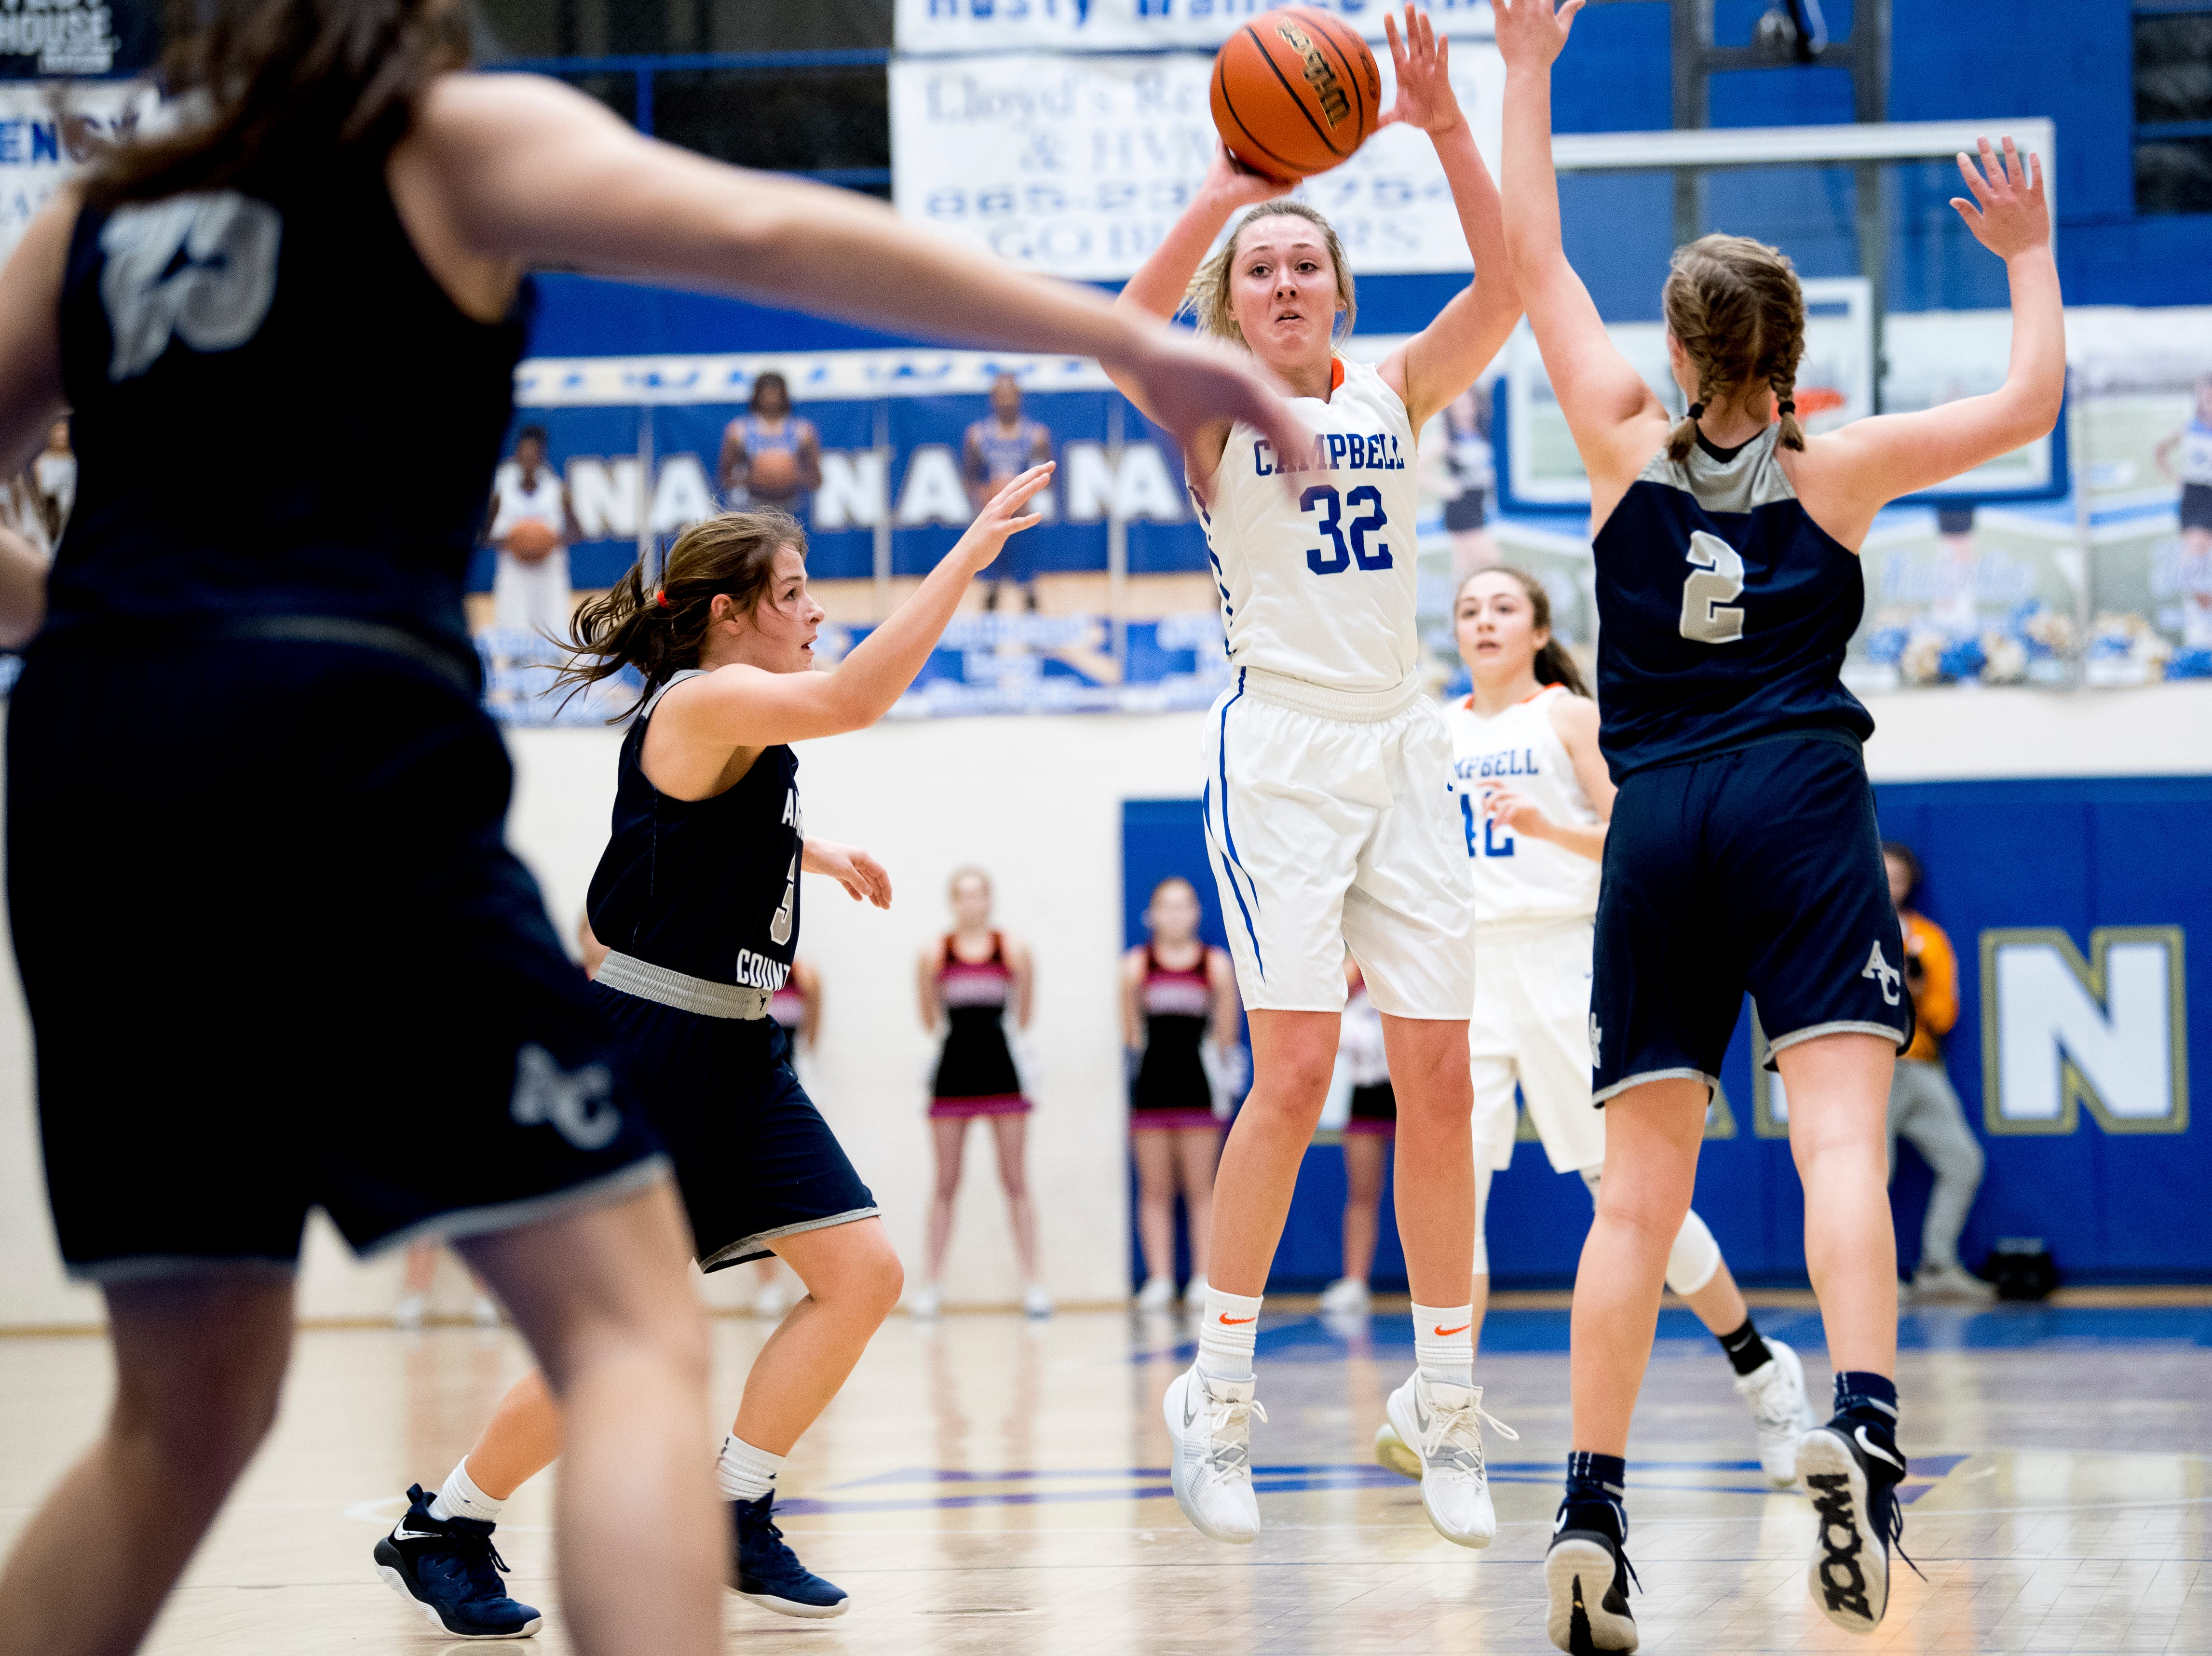 Campbell County's Skylar Boshears (32) shoots the ball as Anderson County's Shae Berry (2) defends during a game between semifinal game between Anderson County and Campbell County at Karns High School in Knoxville, Tennessee on Saturday, February 16, 2019.